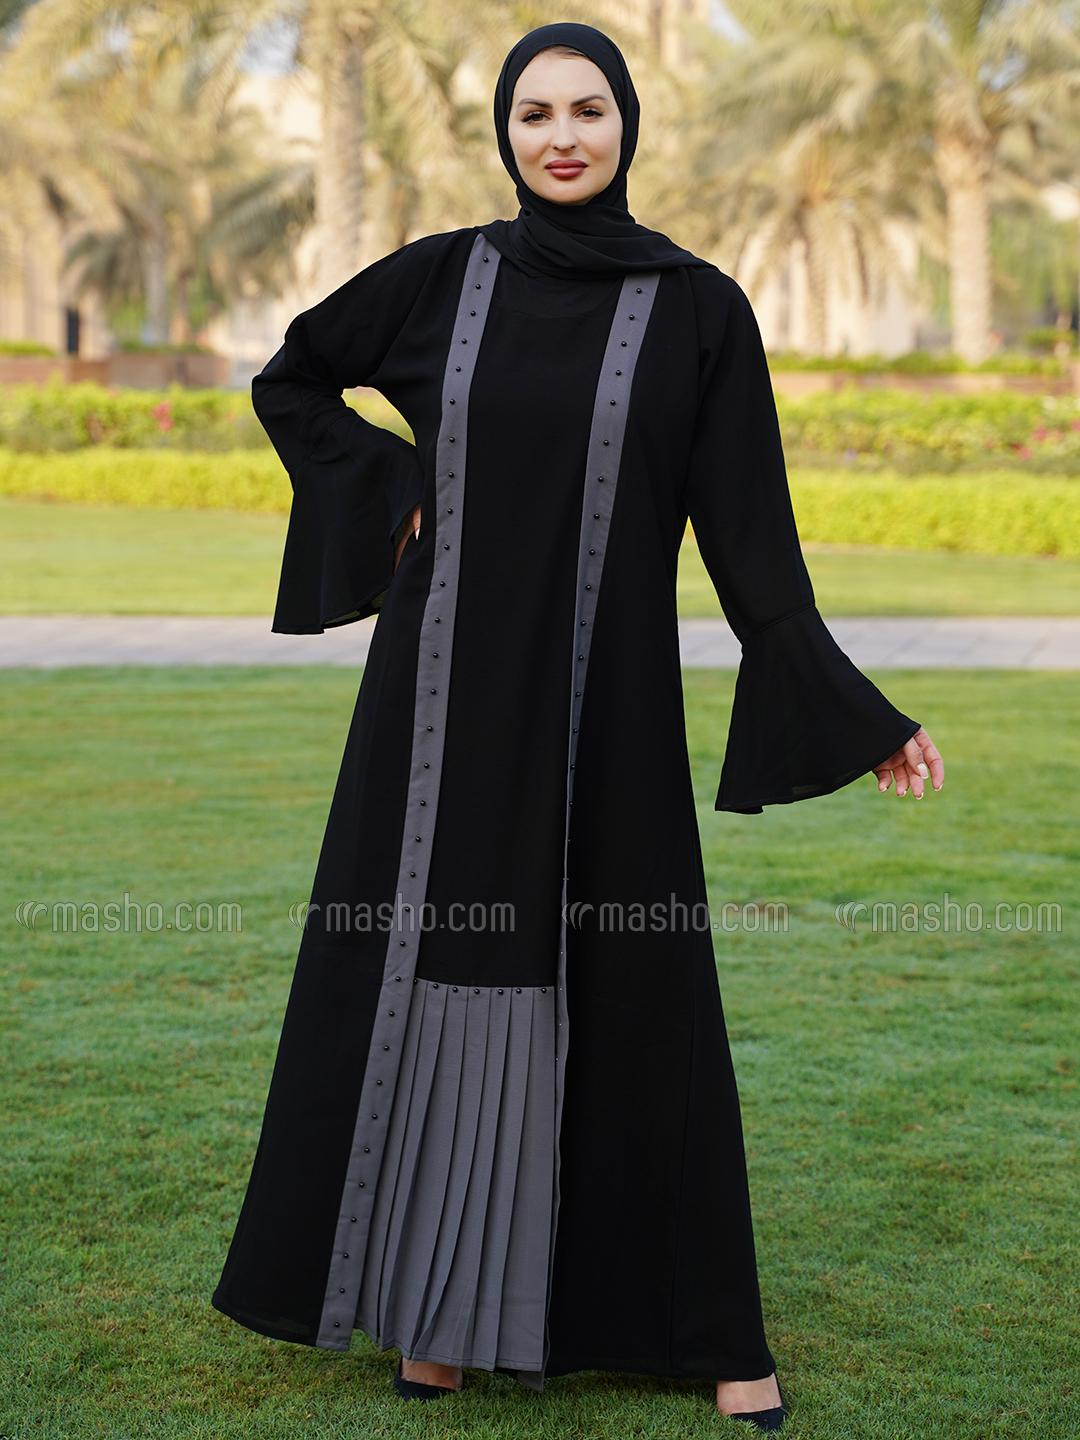 Korean Masha Crepe Free Size Attached Shrug Abaya With Black Pearl Work On Front With Pleat Work On